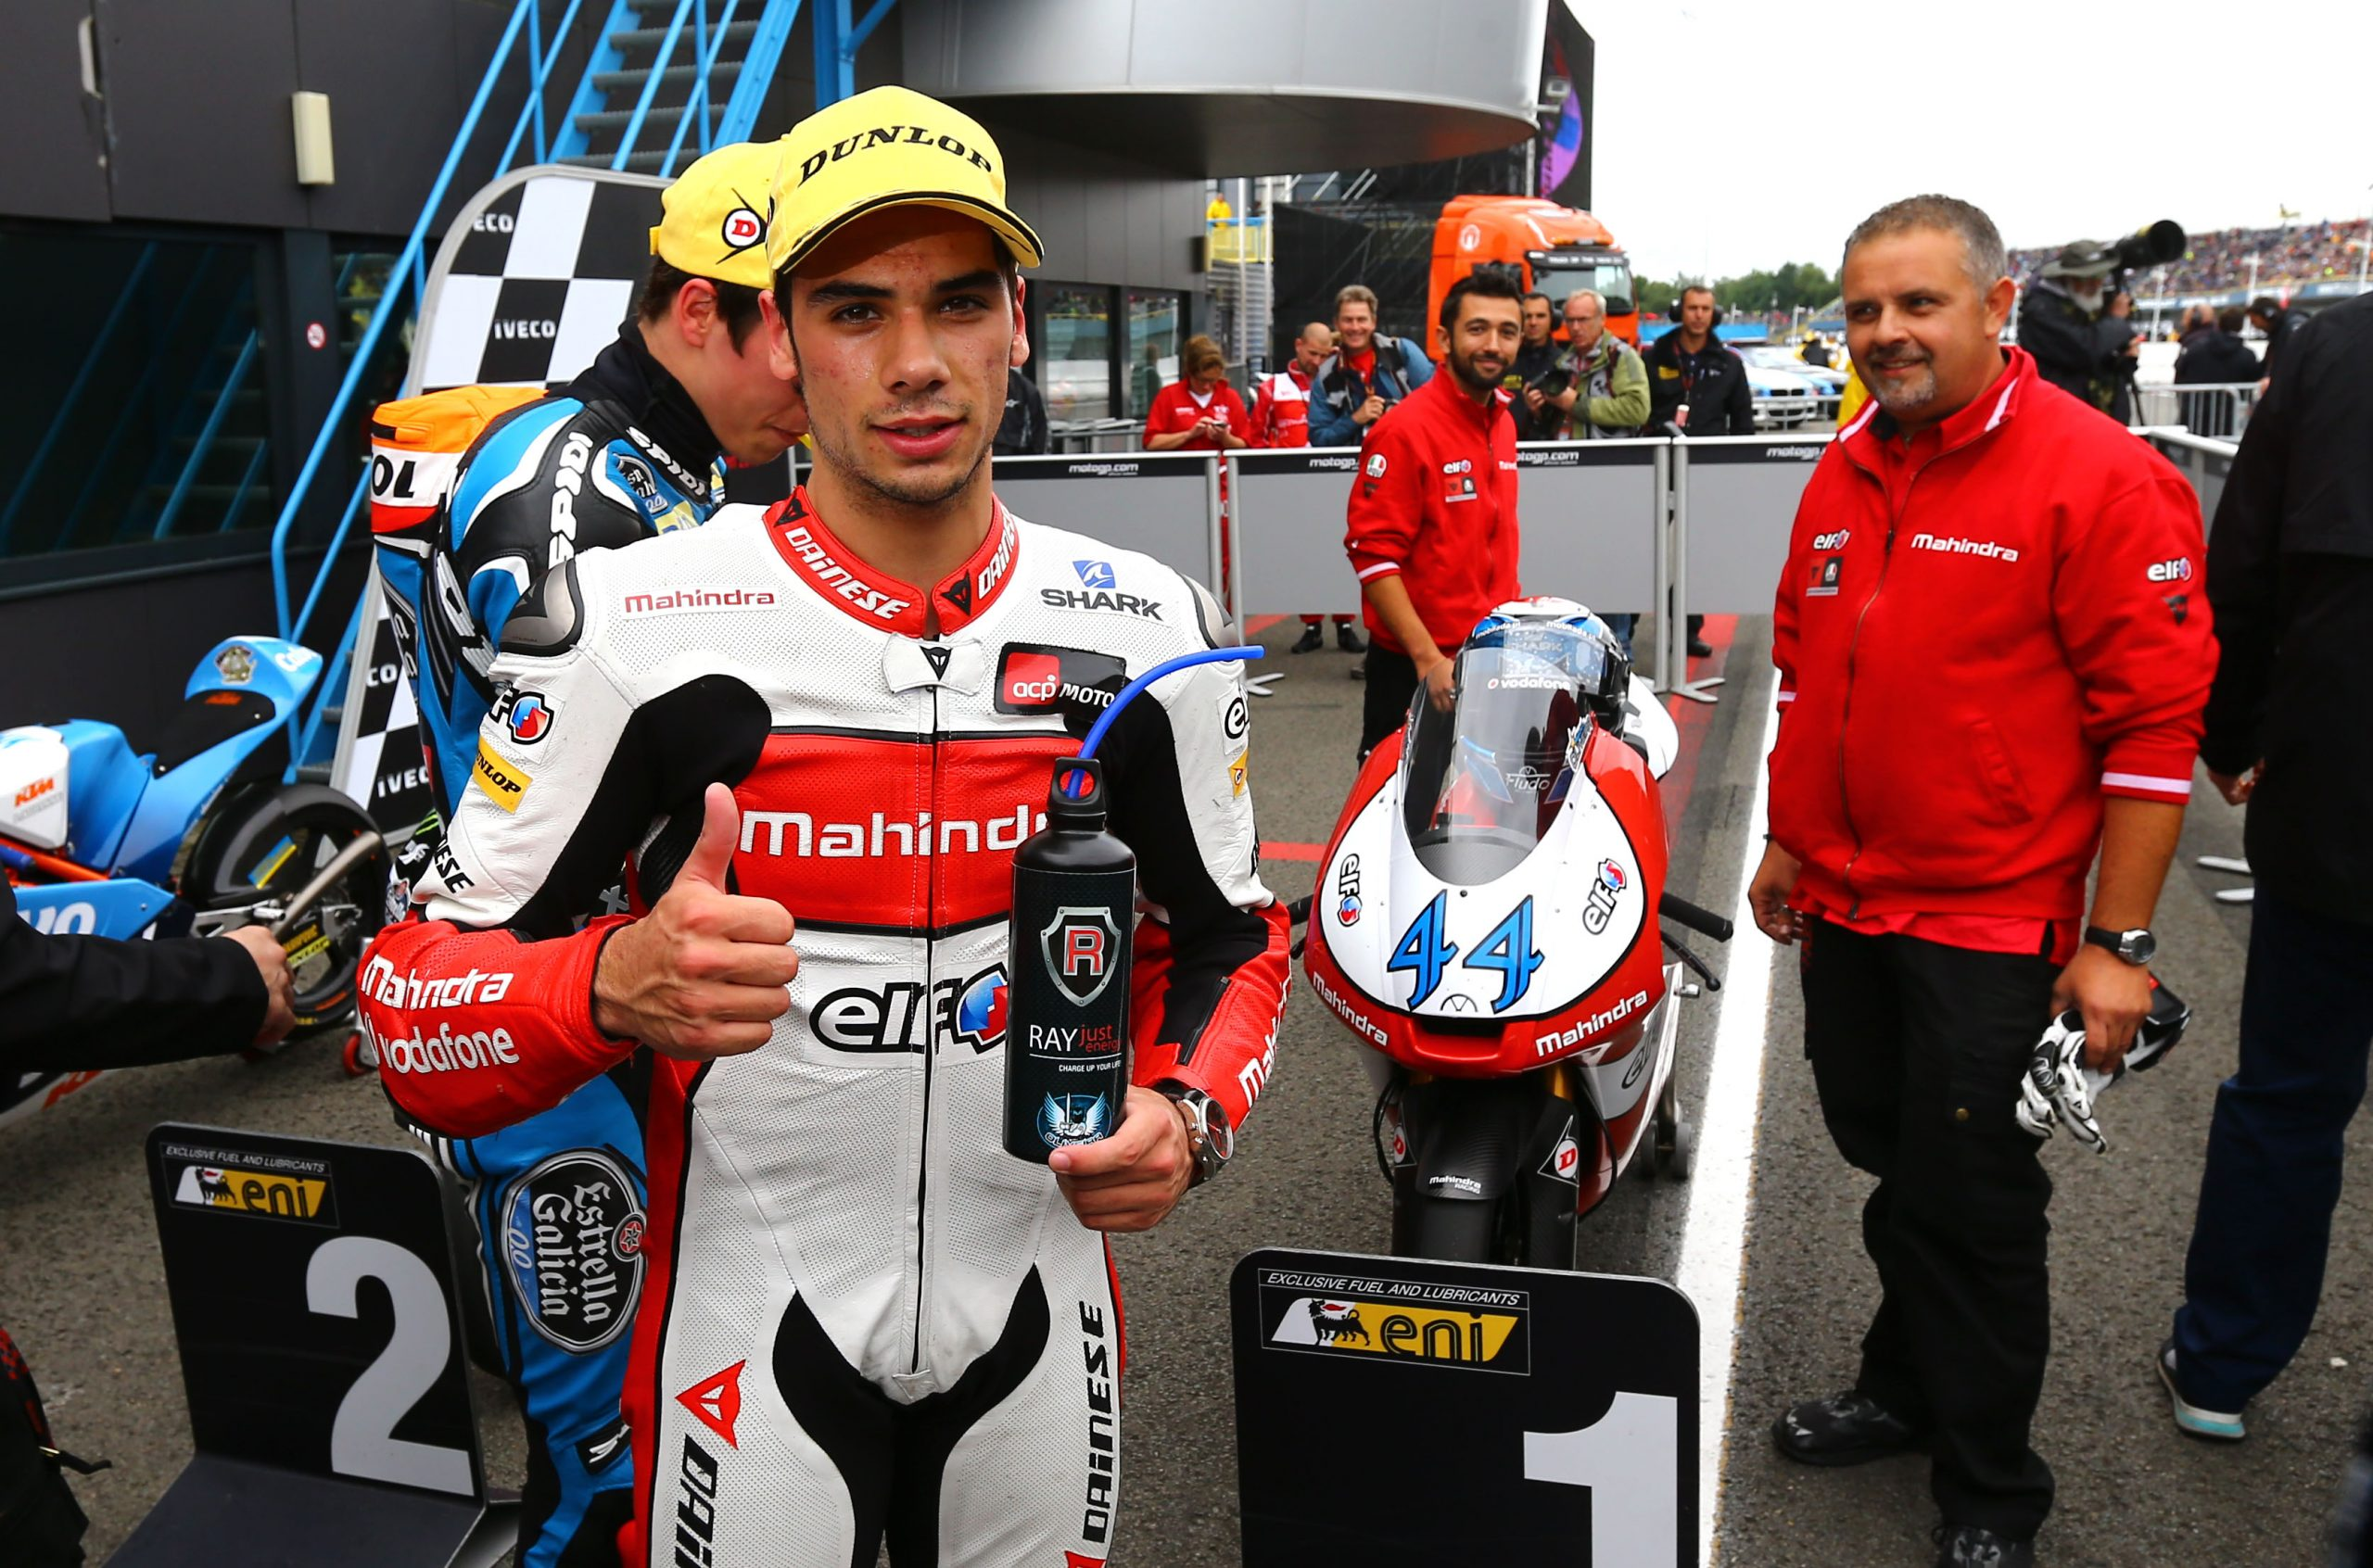 miguel oliveira takes pole in assen